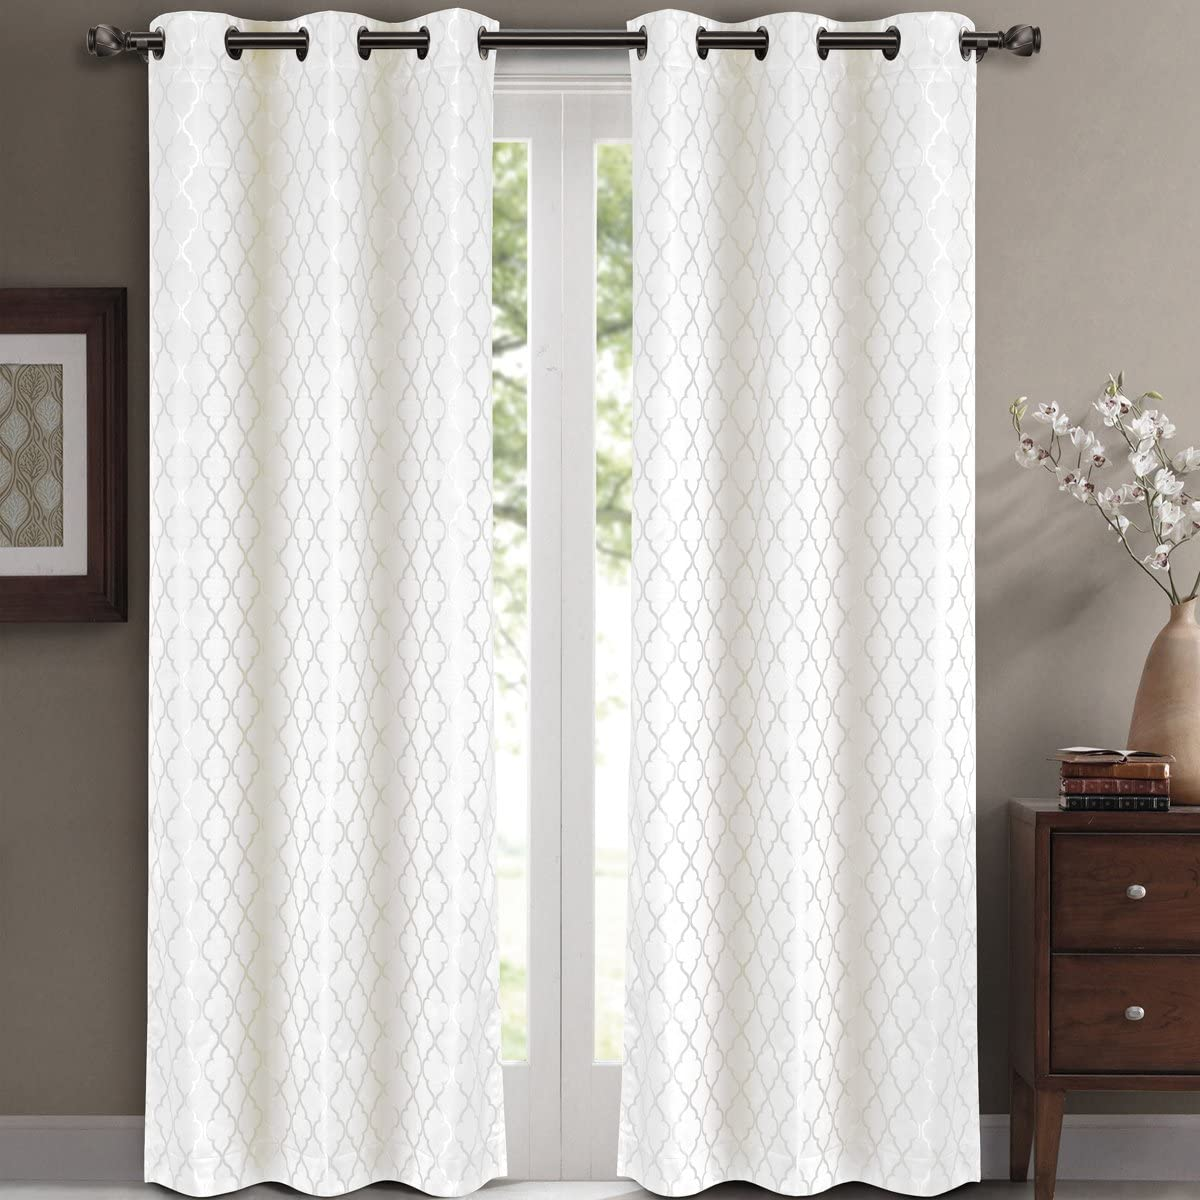 Pair of Two Top Grommet Blackout Jacquard Curtain Panels, Triple-Pass Foam Back Layer, Elegant and Contemporary Willow Blackout Panels, White, Set of Two 42 by 108 Panels 84 by 108 Pair